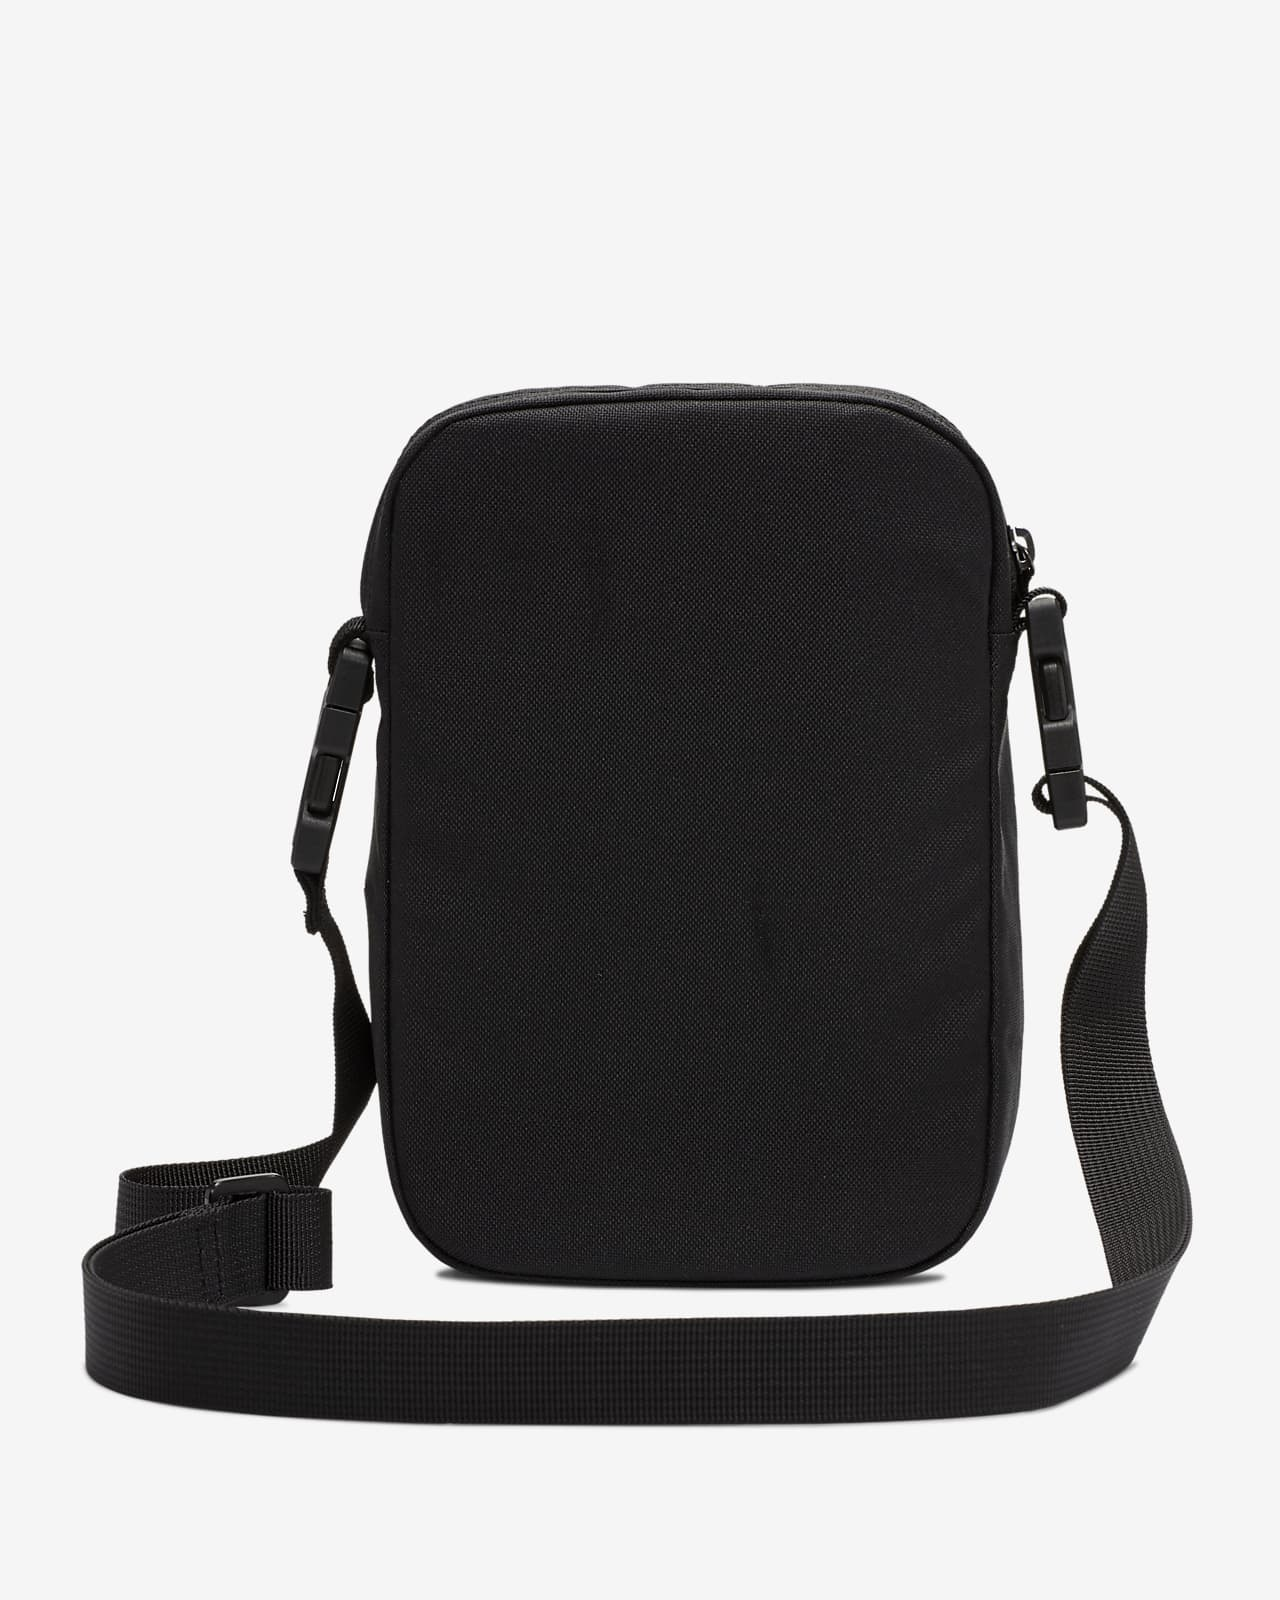 Nike Air Max 2.0 Cross Body Bag (Small Items)